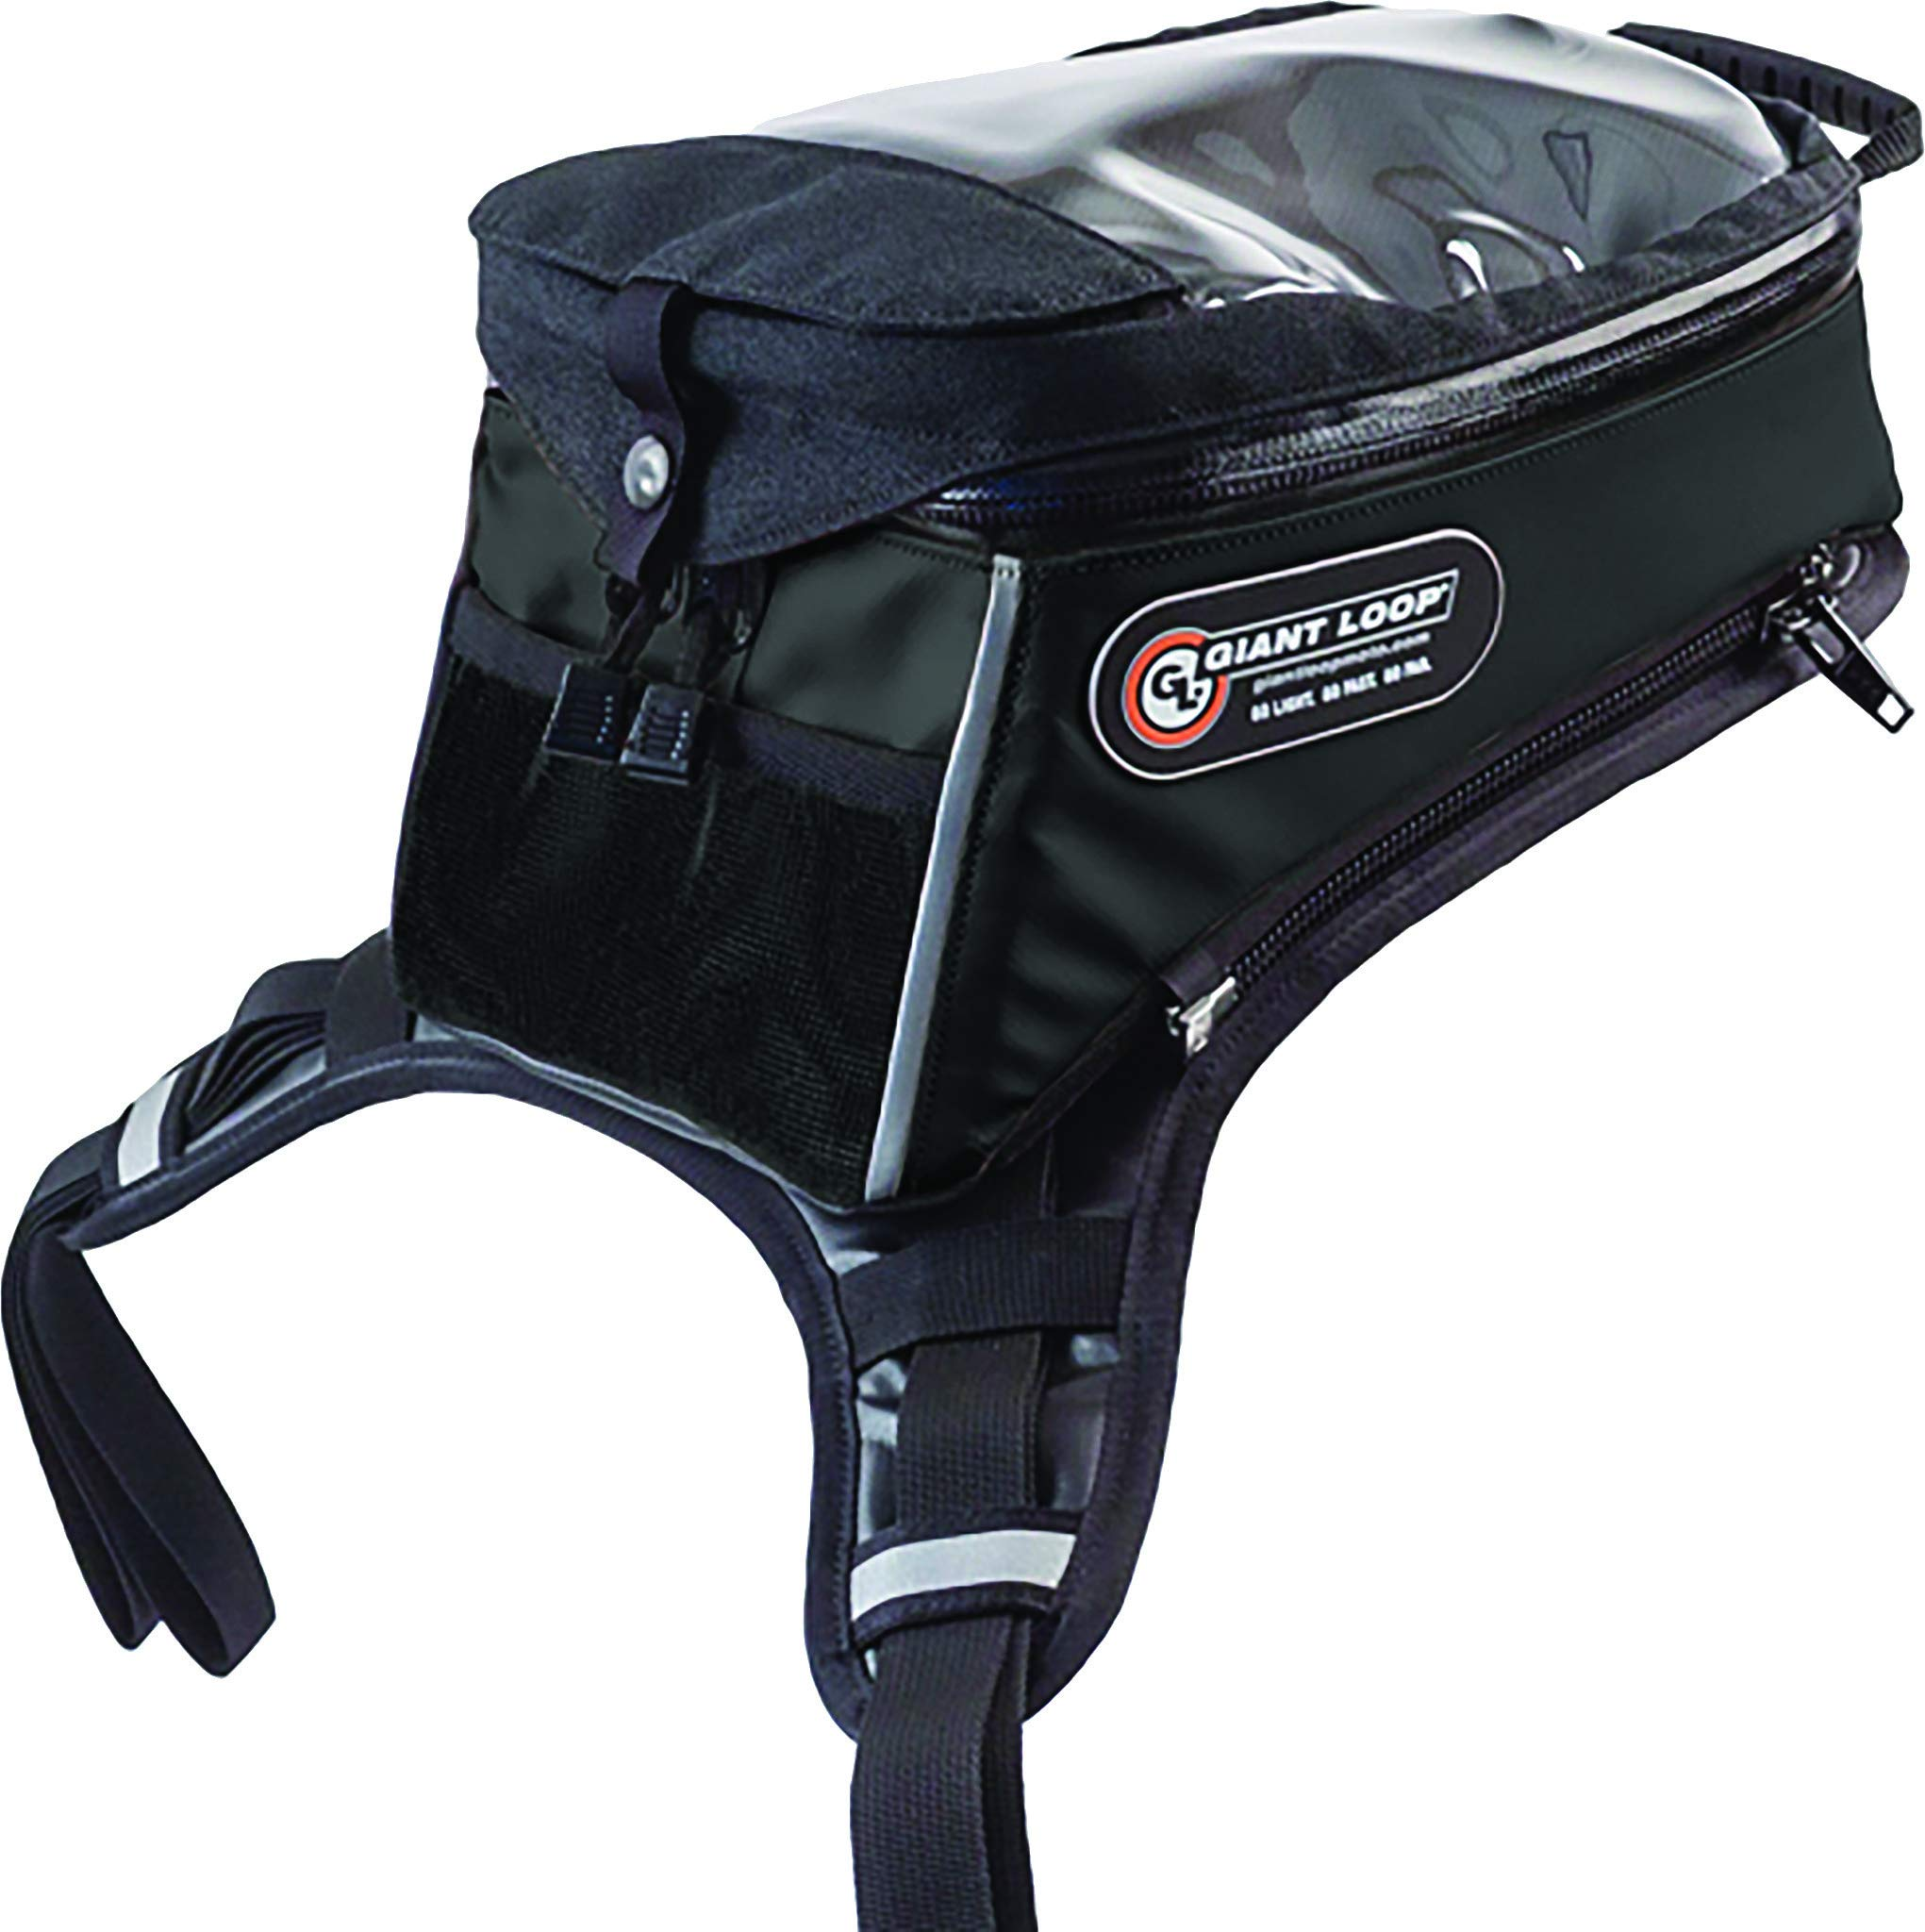 Giant Loop - Diablo Pro Tank Bag - Black by Giant Loop